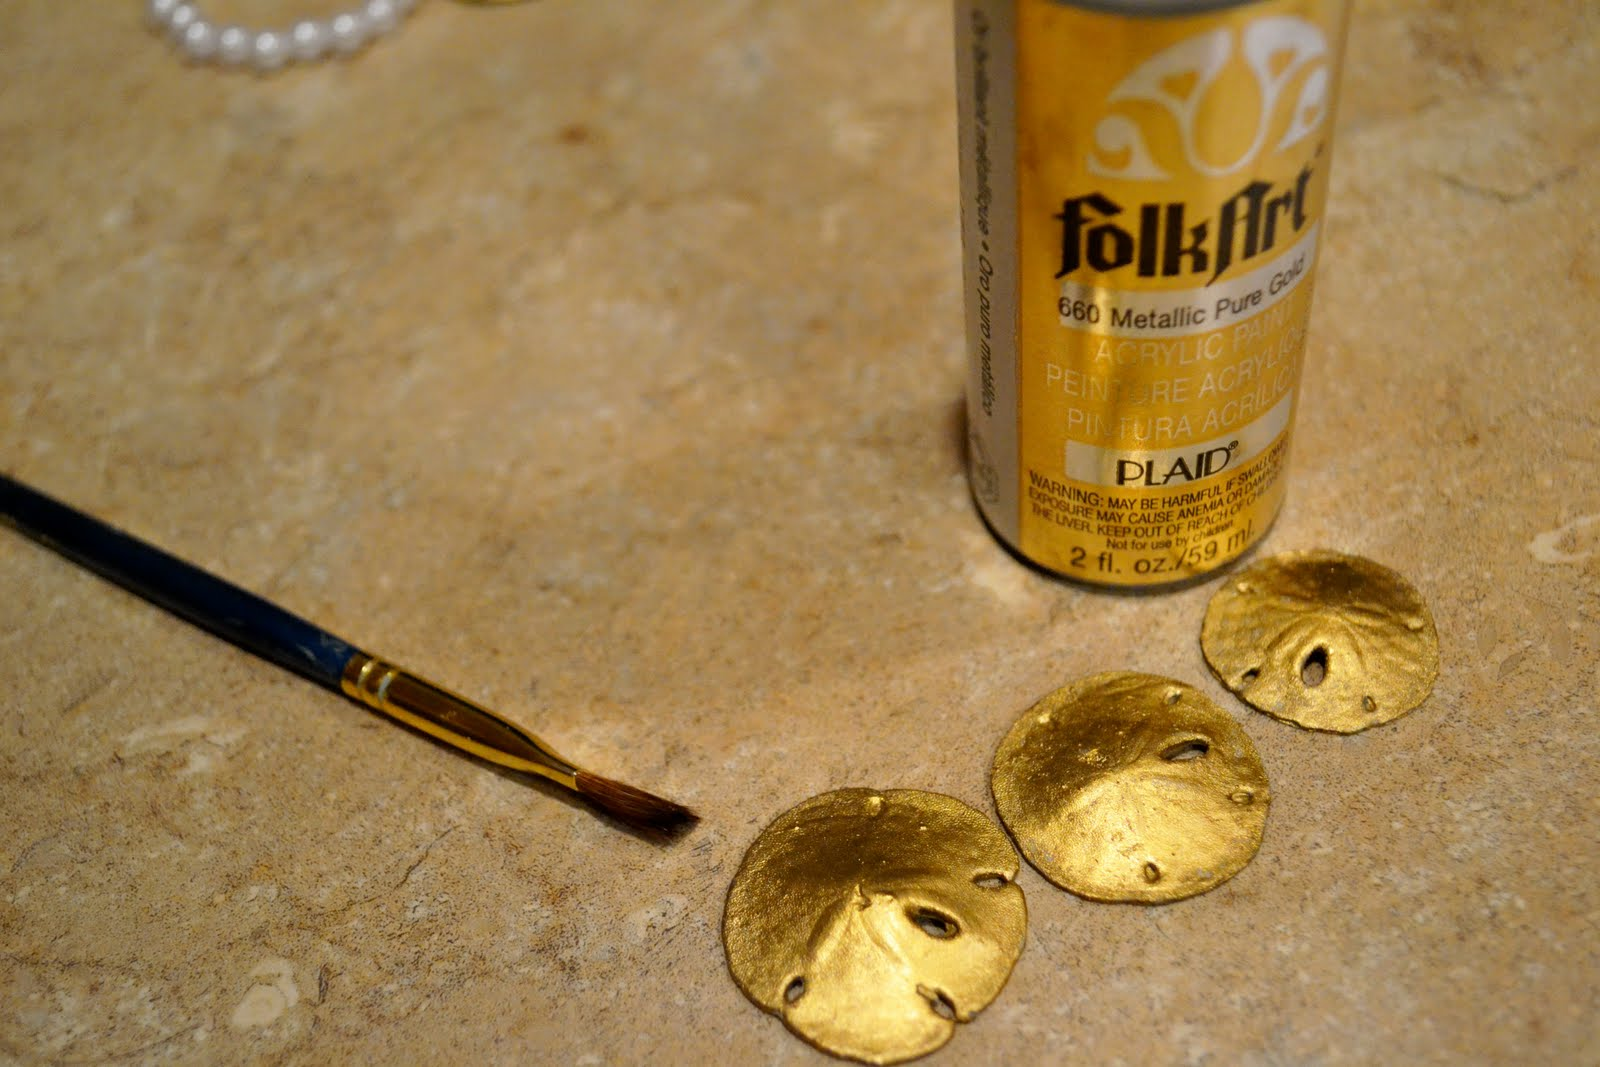 Gold Paint For Metal Jewelry in Metallic Gold to Paint